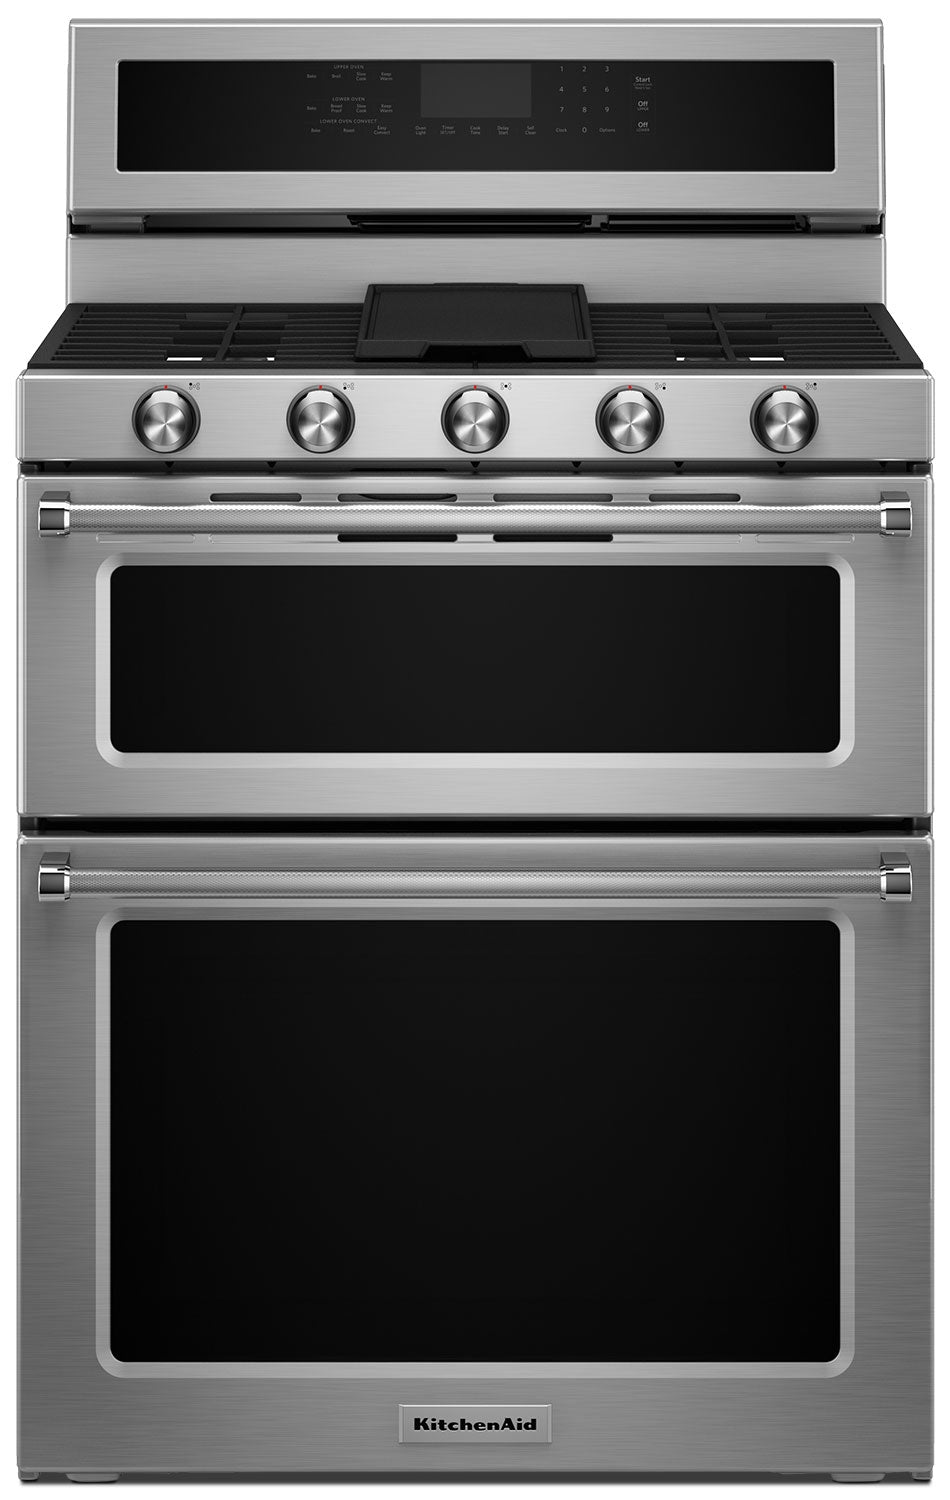 KitchenAid Stainless Steel Dual-Fuel Double Convection Range (6.7 Cu on jenn-air ranges, sears ranges, dual fuel ranges, kitchenaid dishwasher, maytag range, kitchenaid refrigerator, sharp ranges, amana ranges, ge ranges, bosch ranges, jenn air range, kitchenaid appliance, kitchenaid electric range, magic chef range, commercial ranges, stoves range, range parts, kenmore ranges, frigidaire range, kitchenaid parts, ge range, whirlpool ranges, electric kitchen range, electric range, maytag ranges, professional ranges, luxury ranges, dcs ranges, kitchenaid microwave, whirlpool range, dual fuel range, thermador ranges, hotpoint range, wolf ranges, smeg ranges, amana range, dacor ranges, frigidaire ranges, gas ranges,